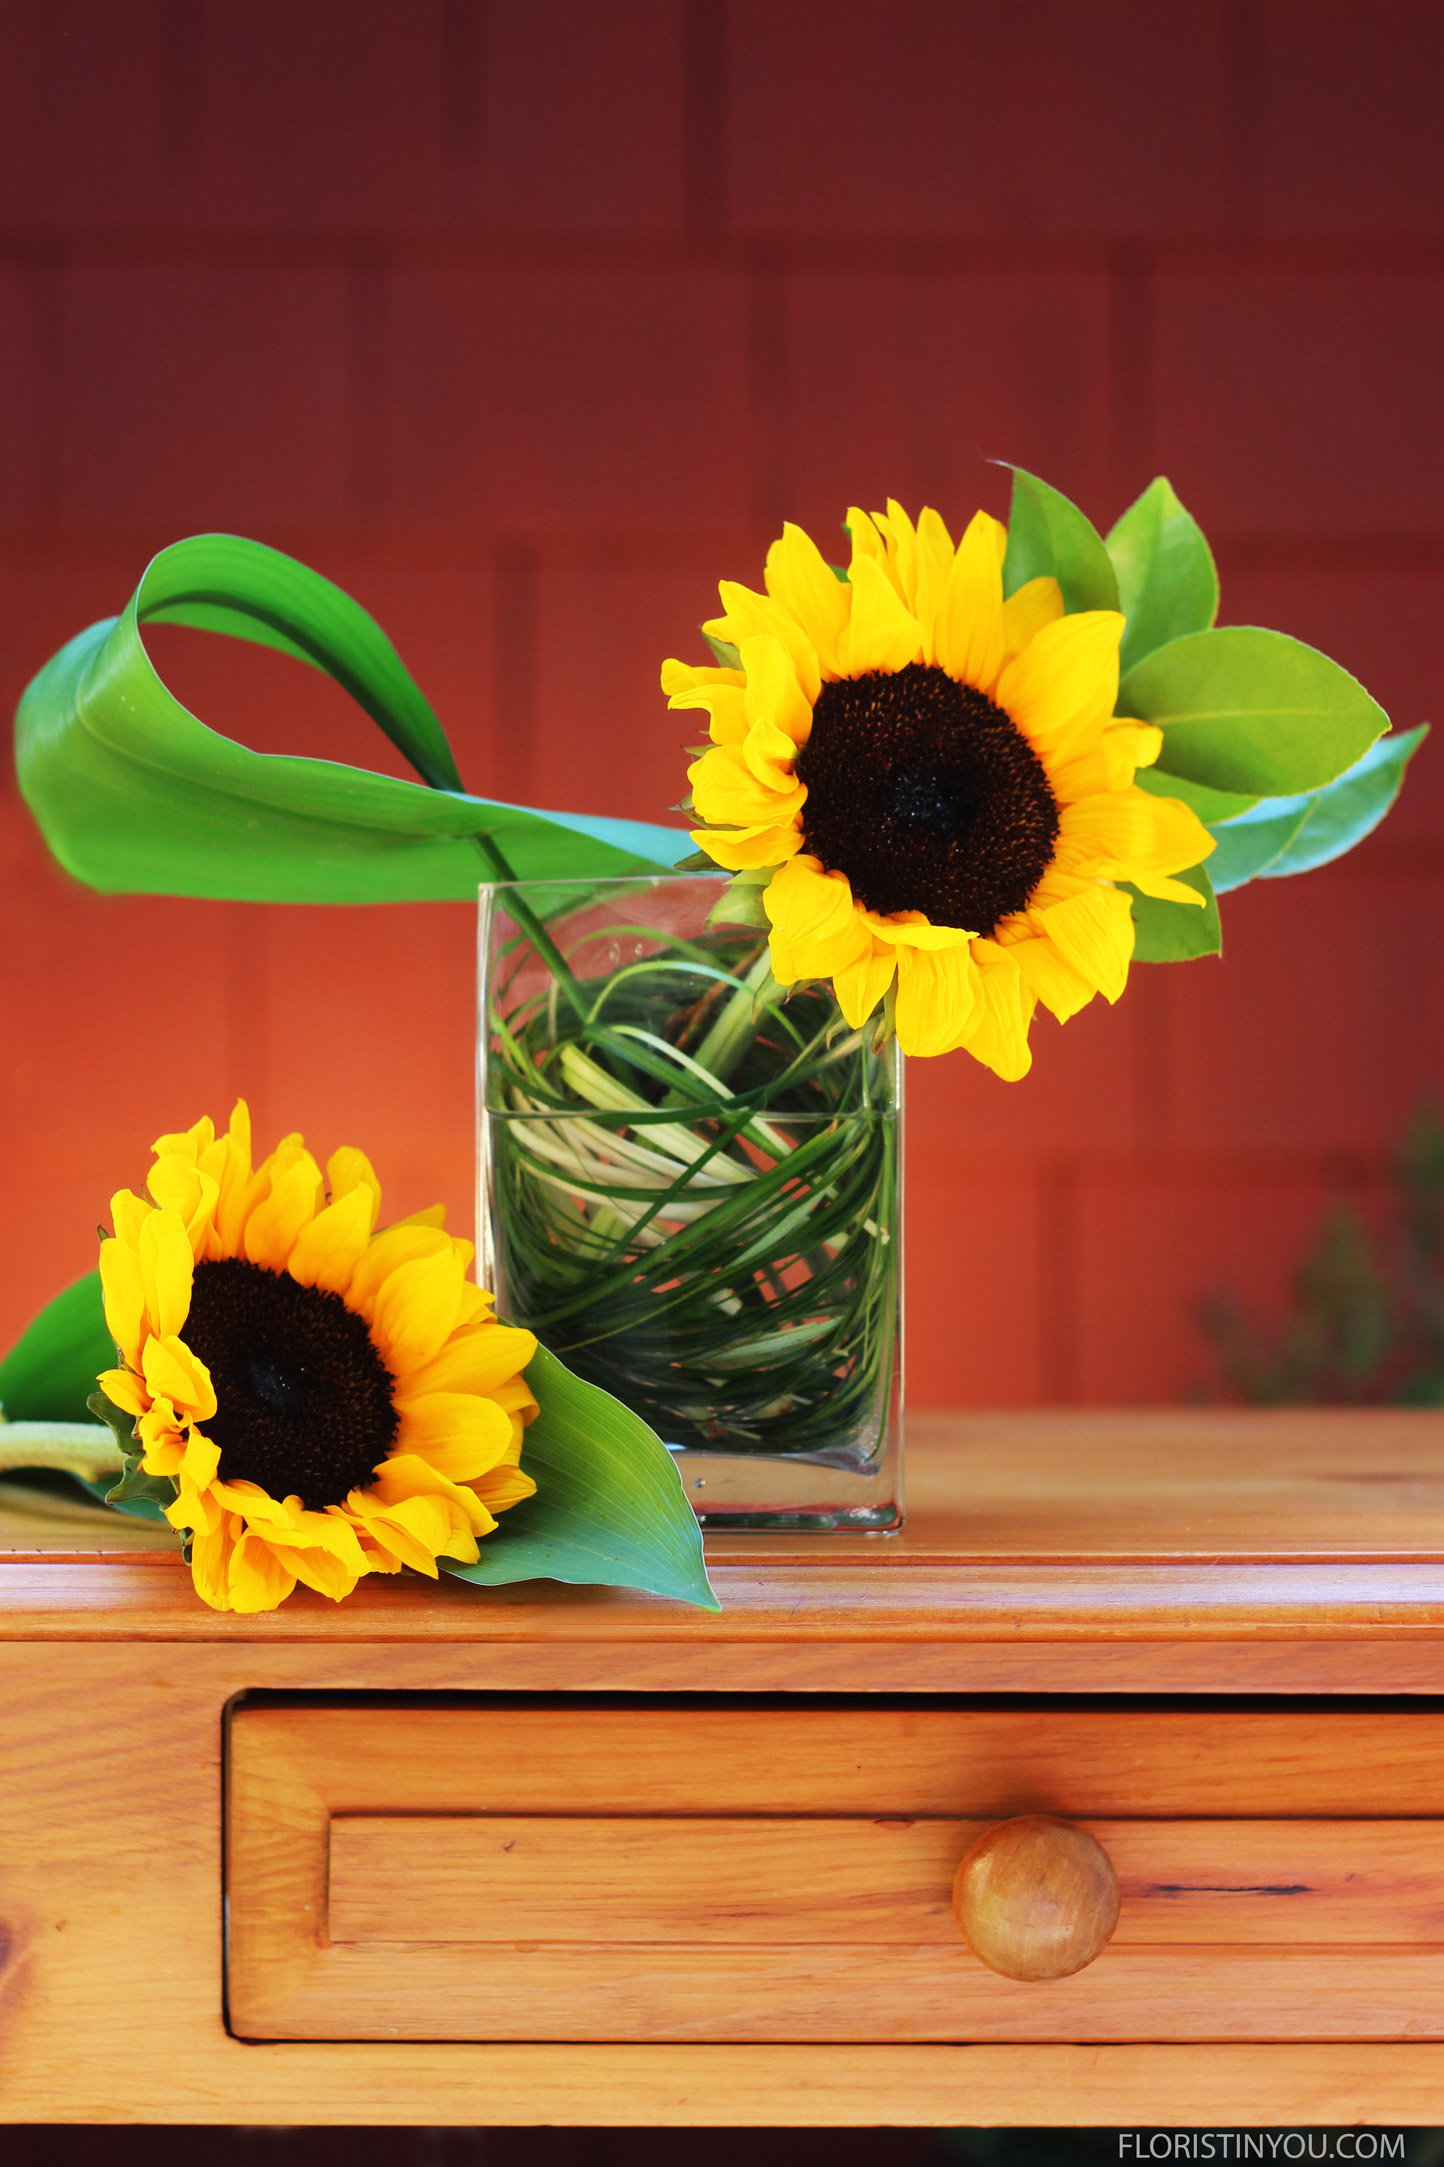 Add a Sunflower to the right.